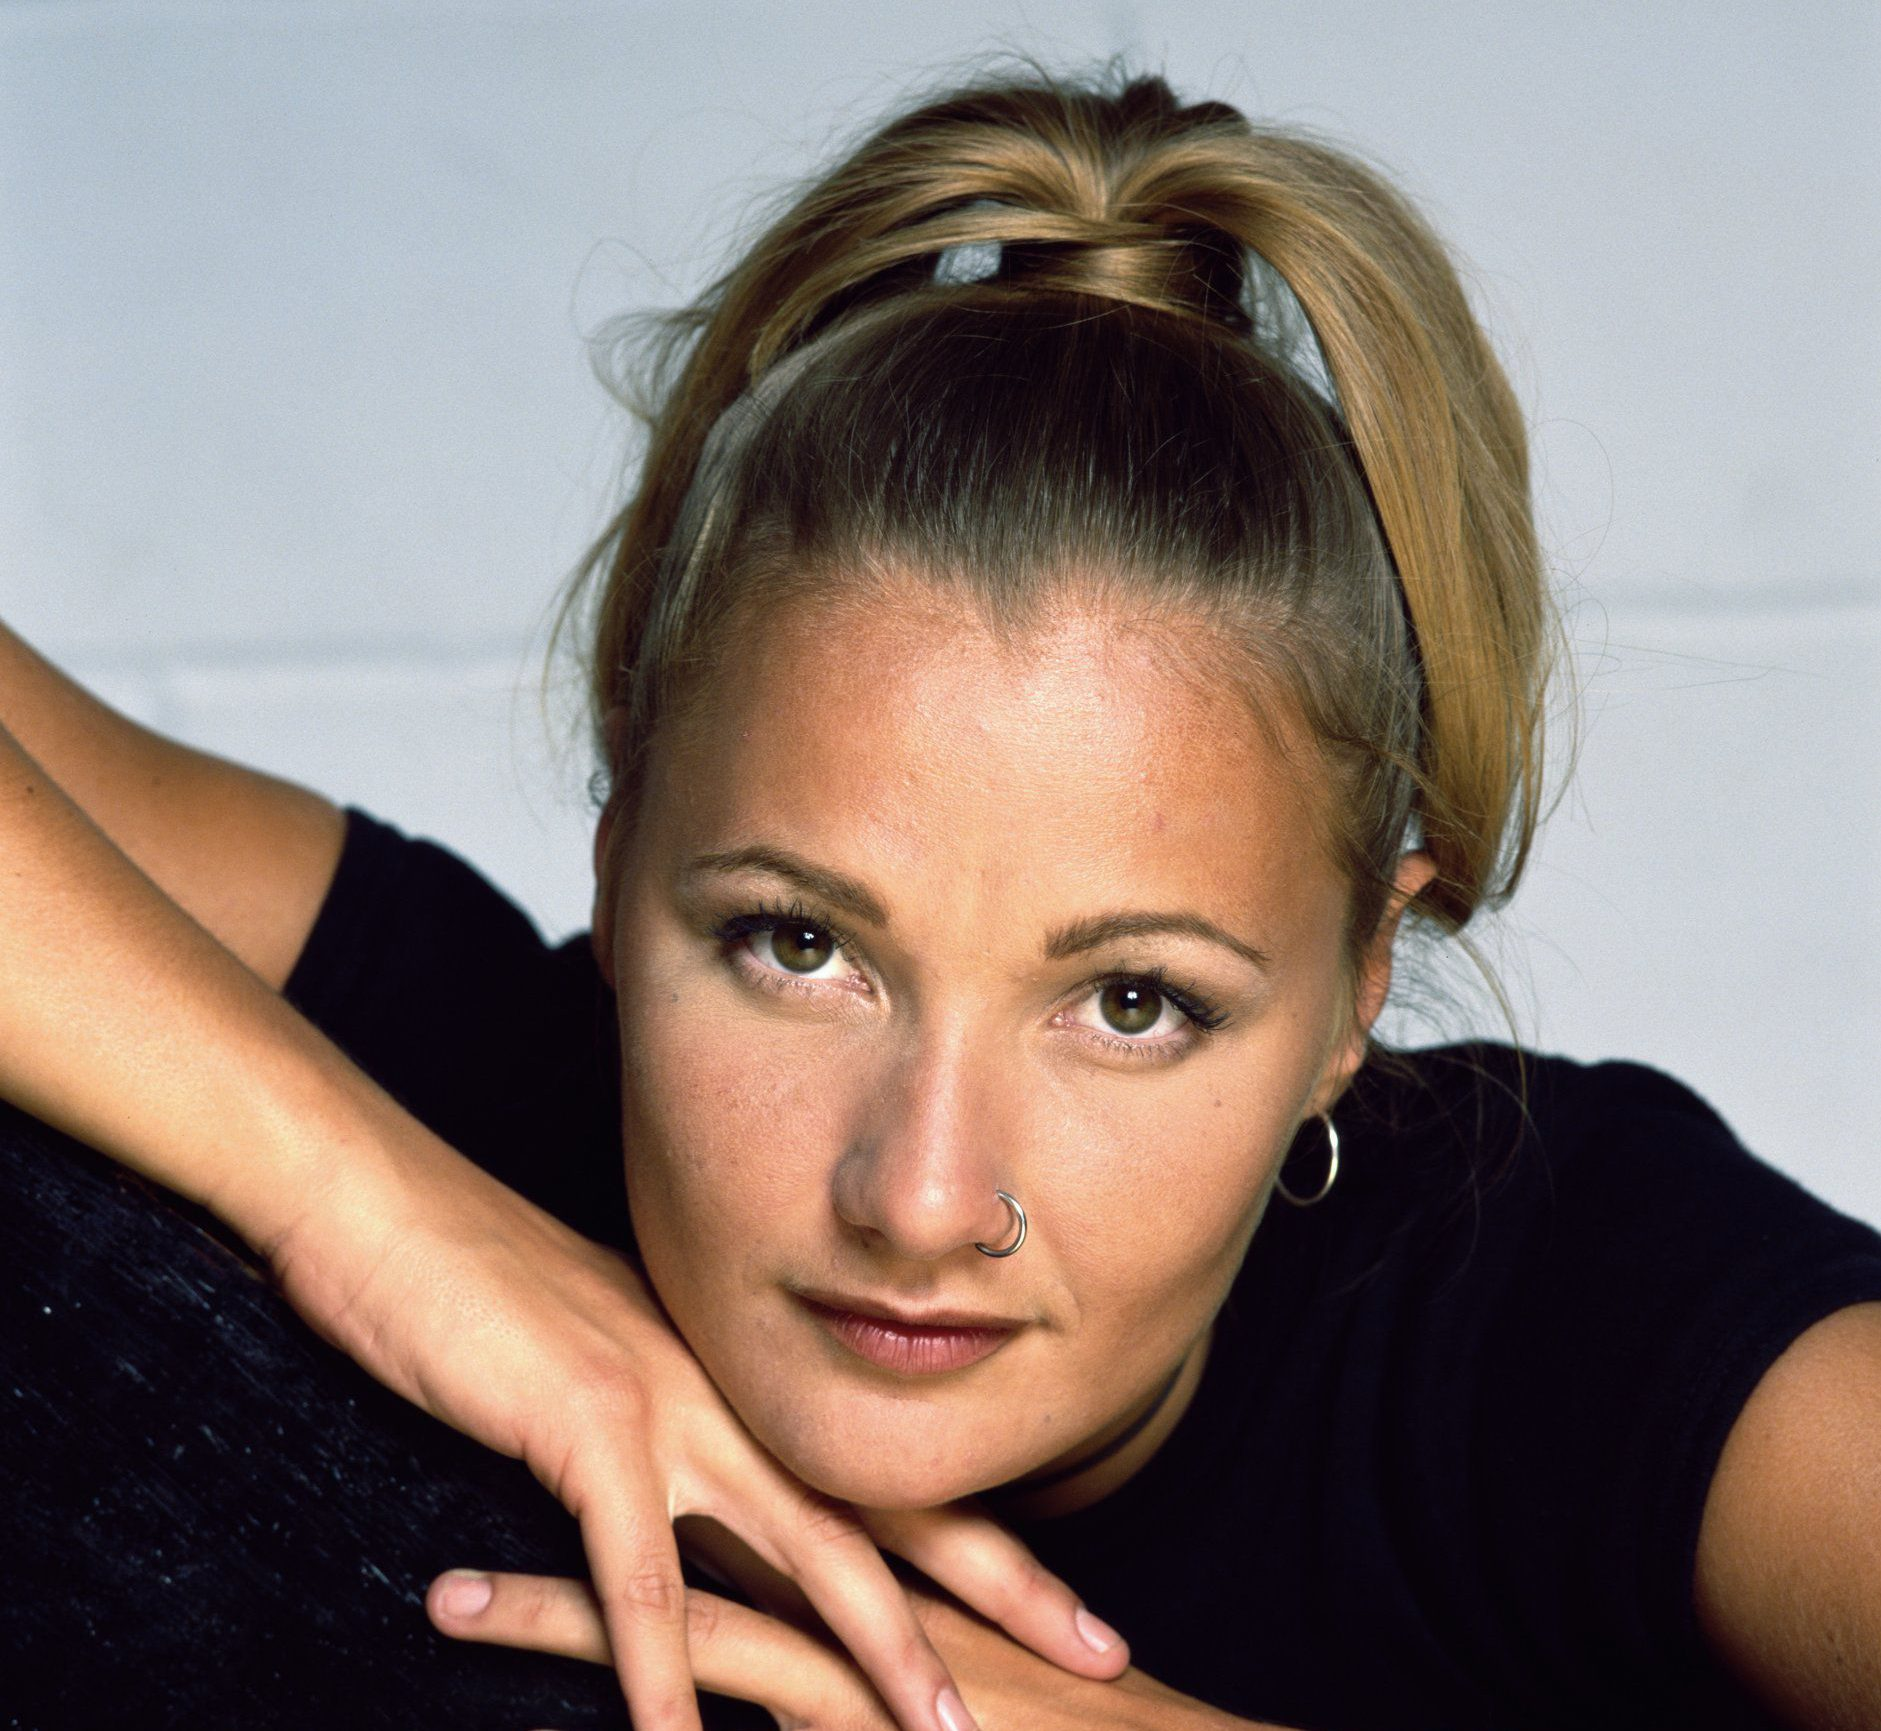 Danish singer Whigfield, circa 1994. (Photo by Tim Roney/Getty Images)